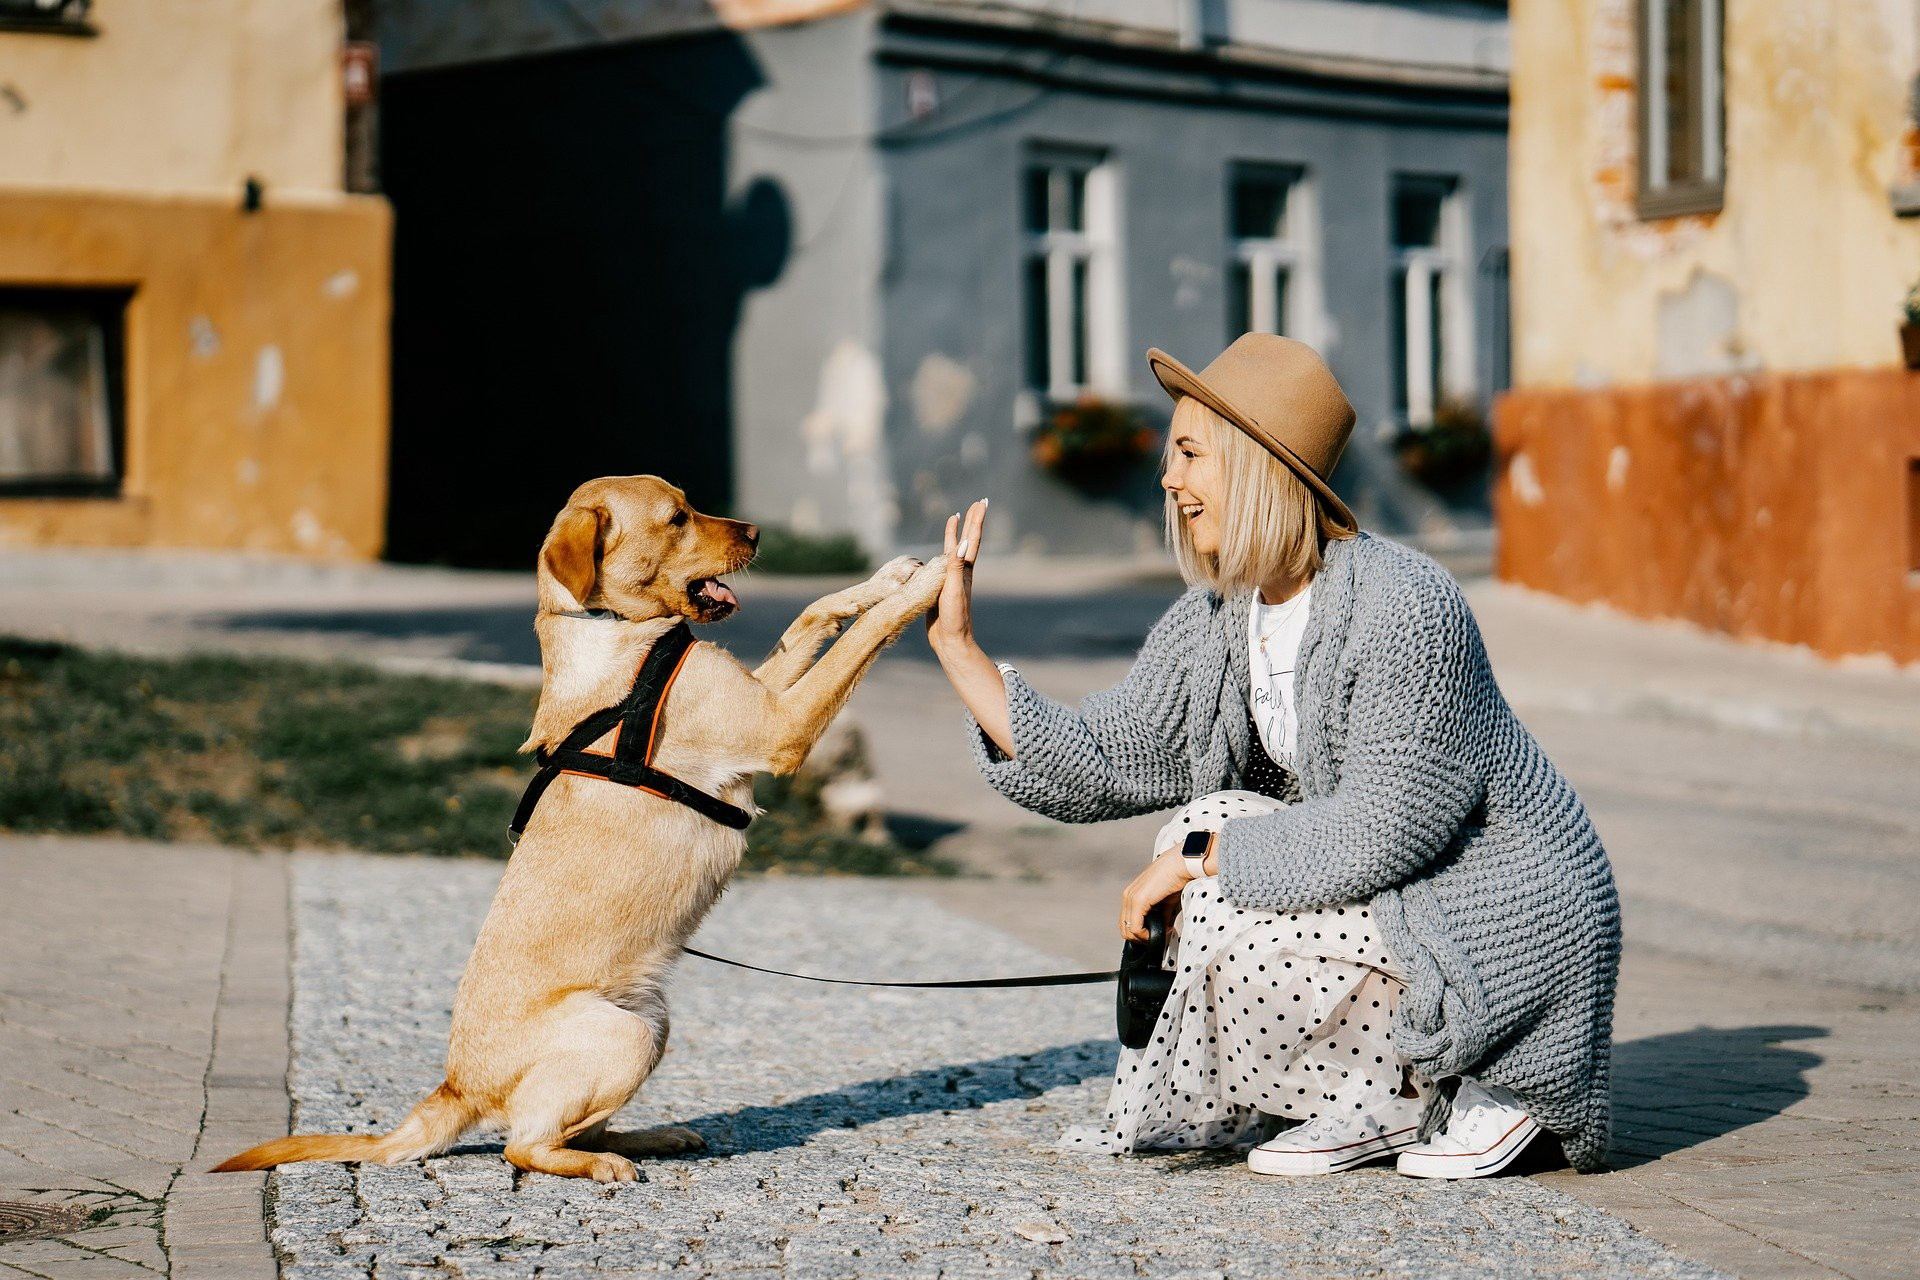 A girl wearing a brown hat shakes hands with a dog somewhere in Europe.